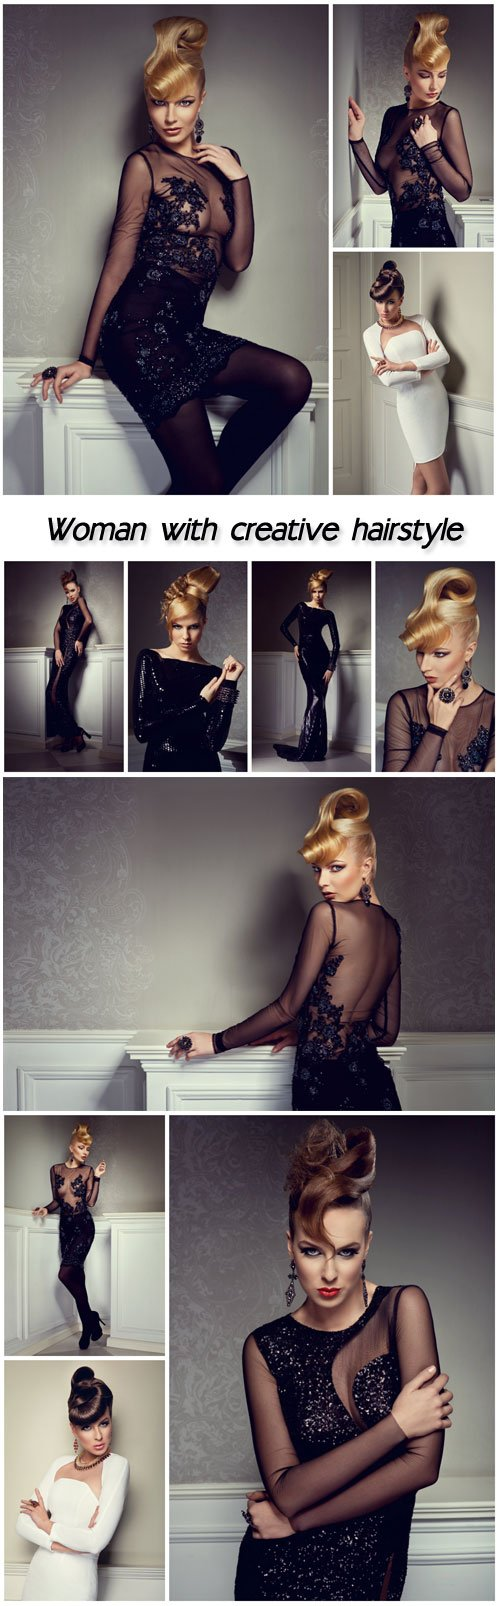 BEAUTIFUL BLONDE WOMAN WITH CREATIVE HAIRSTYLE WEARING EVENING DRESS